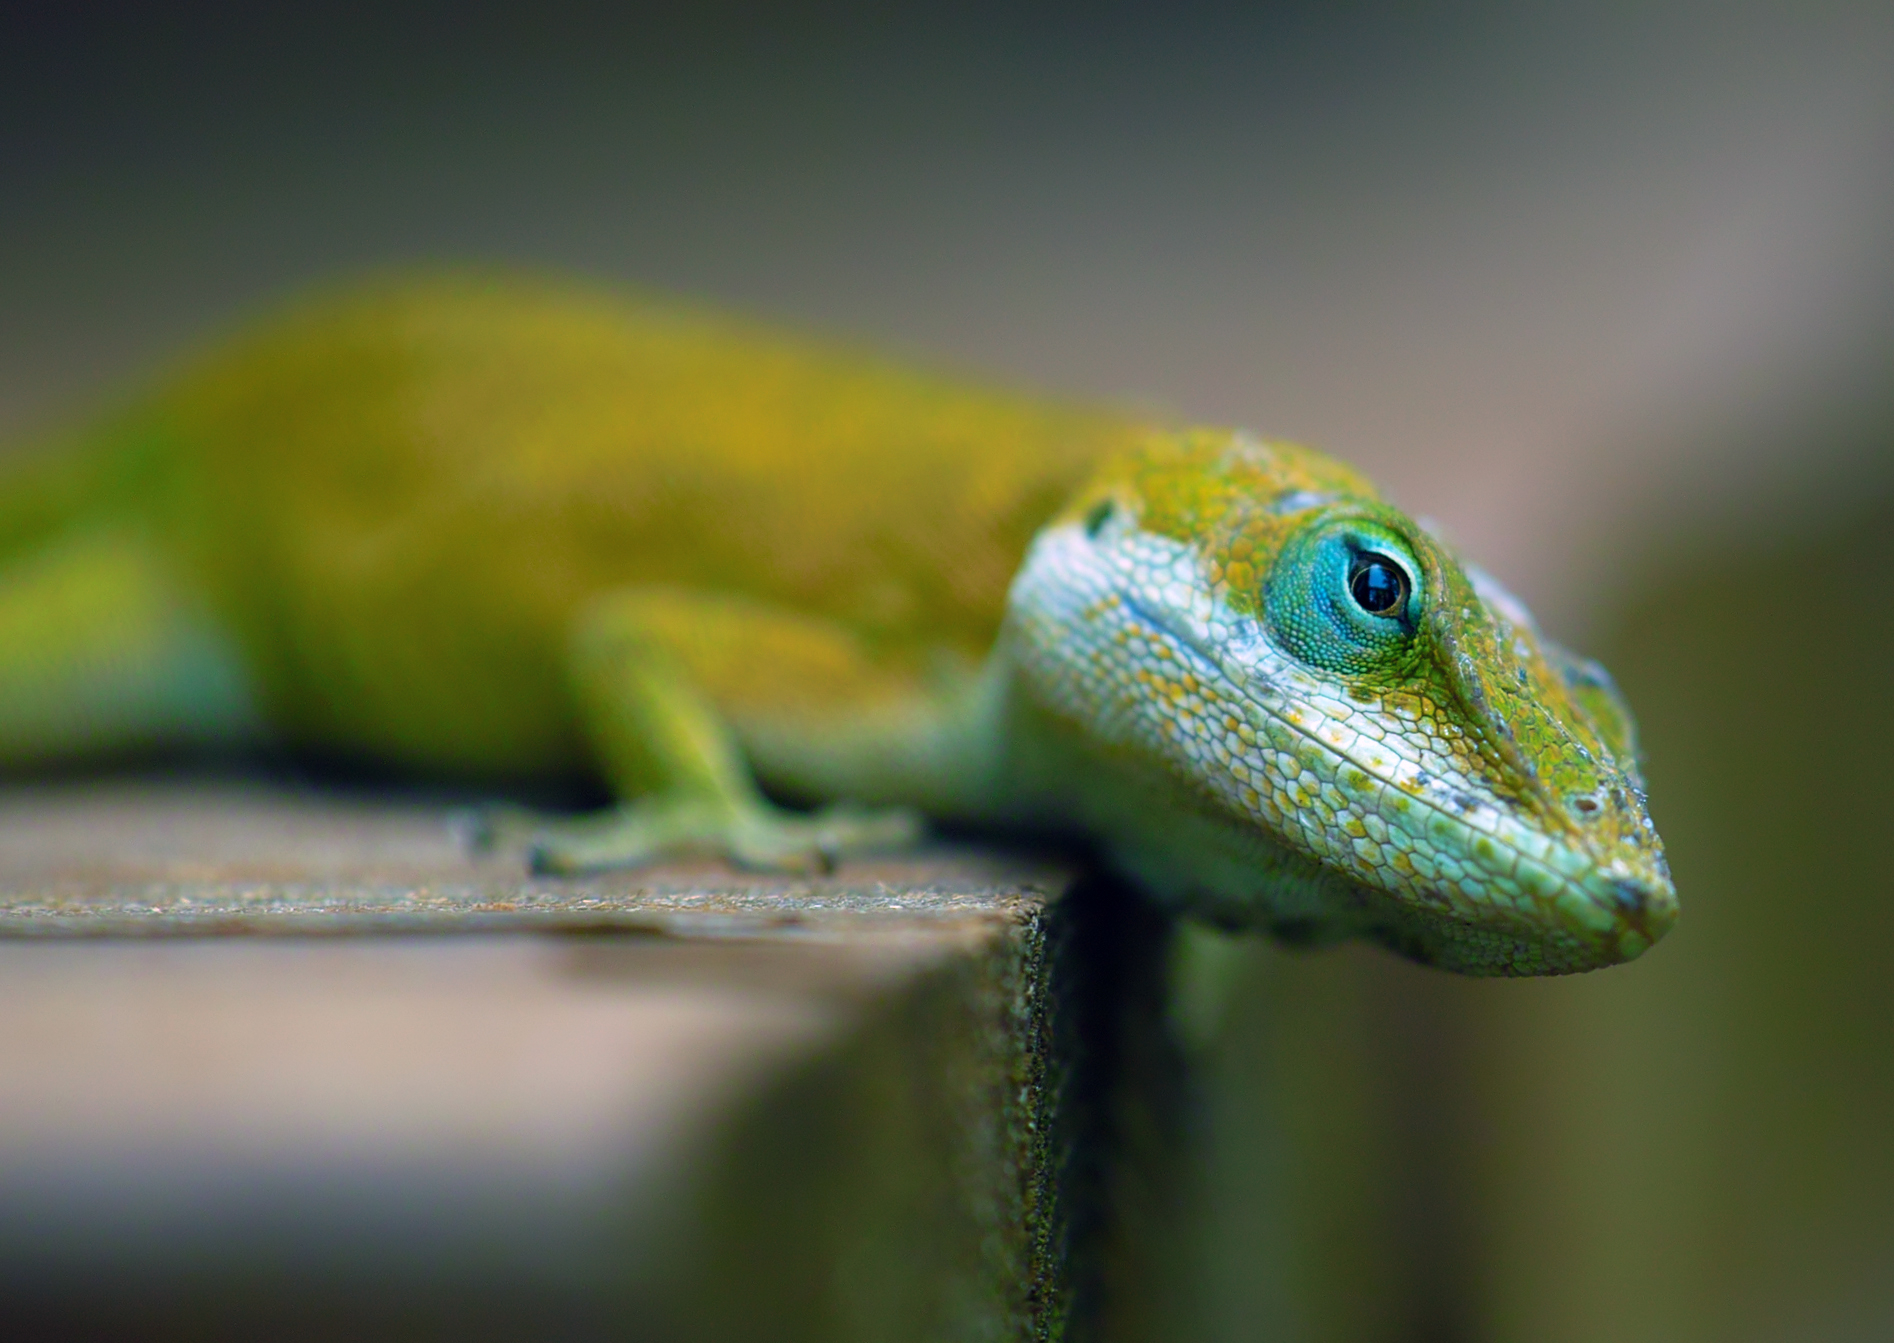 22 reptile hd wallpapers - photo #3